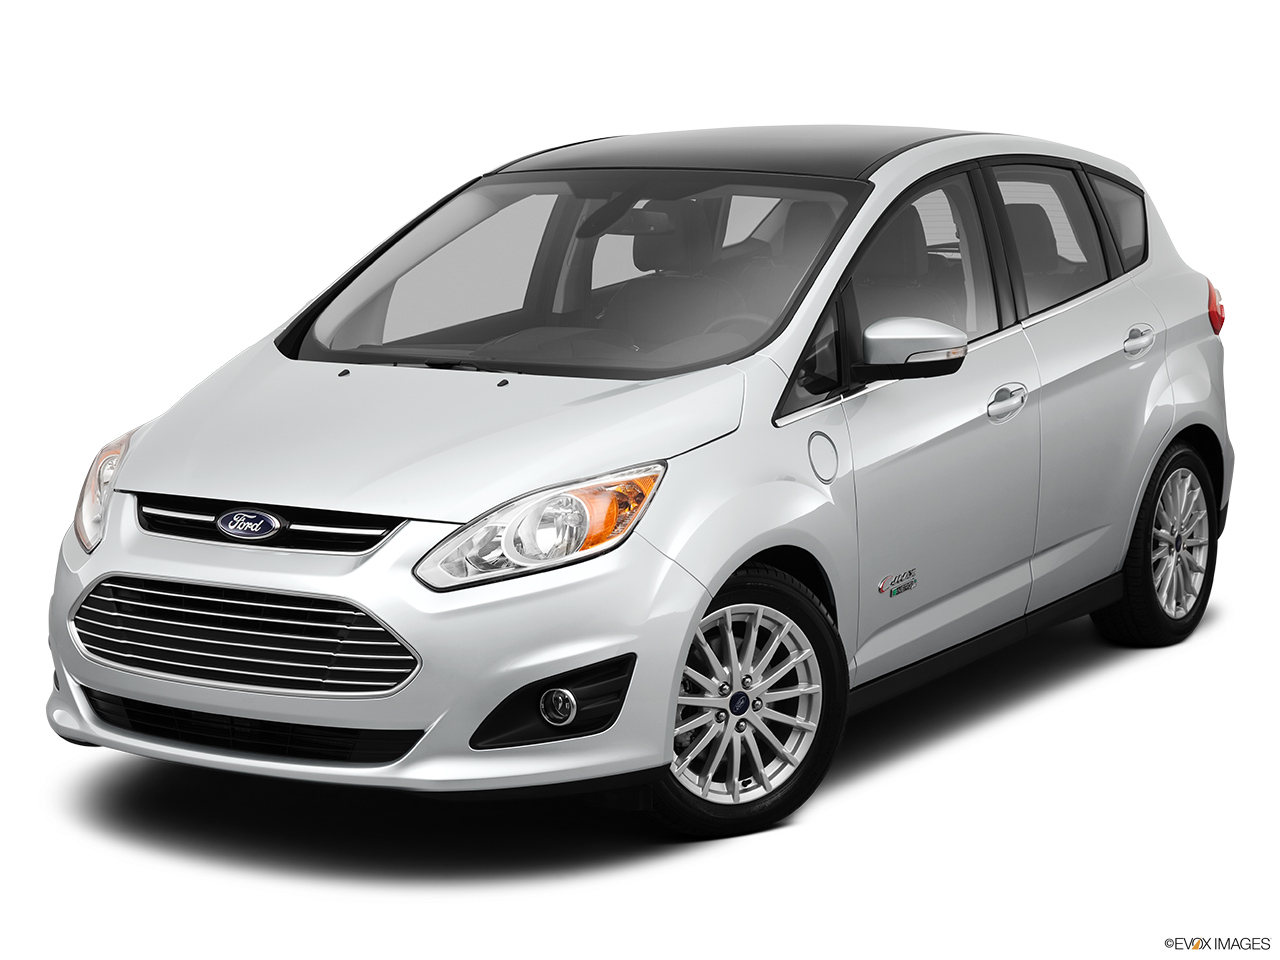 2014 ford c max energi 5dr hatchback sel. Black Bedroom Furniture Sets. Home Design Ideas